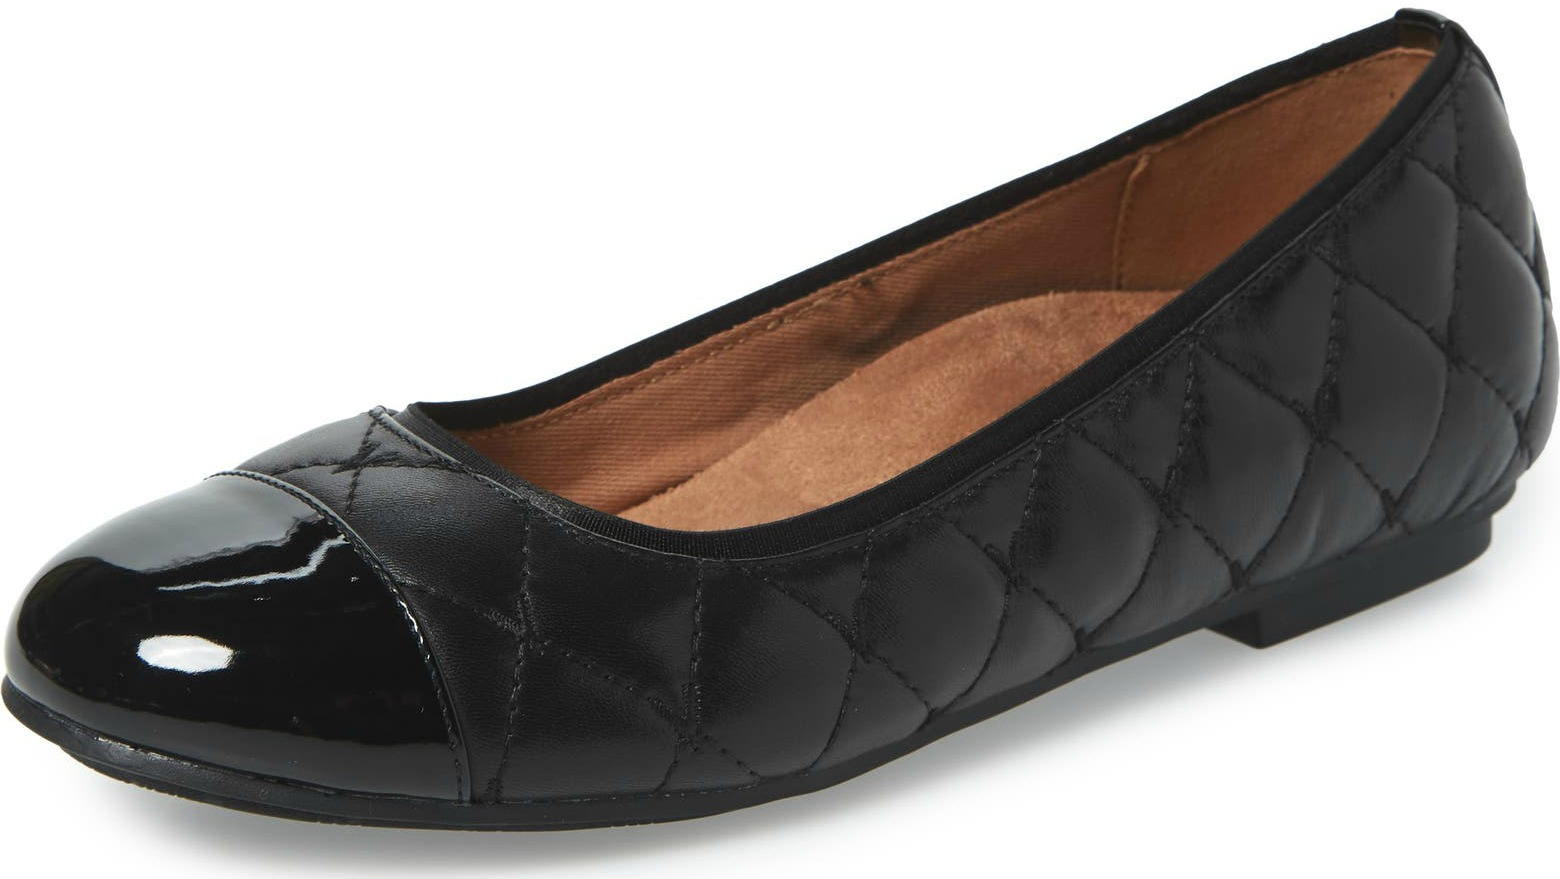 Vionic-podiatrist-recommended-shoes-for-flat-feet